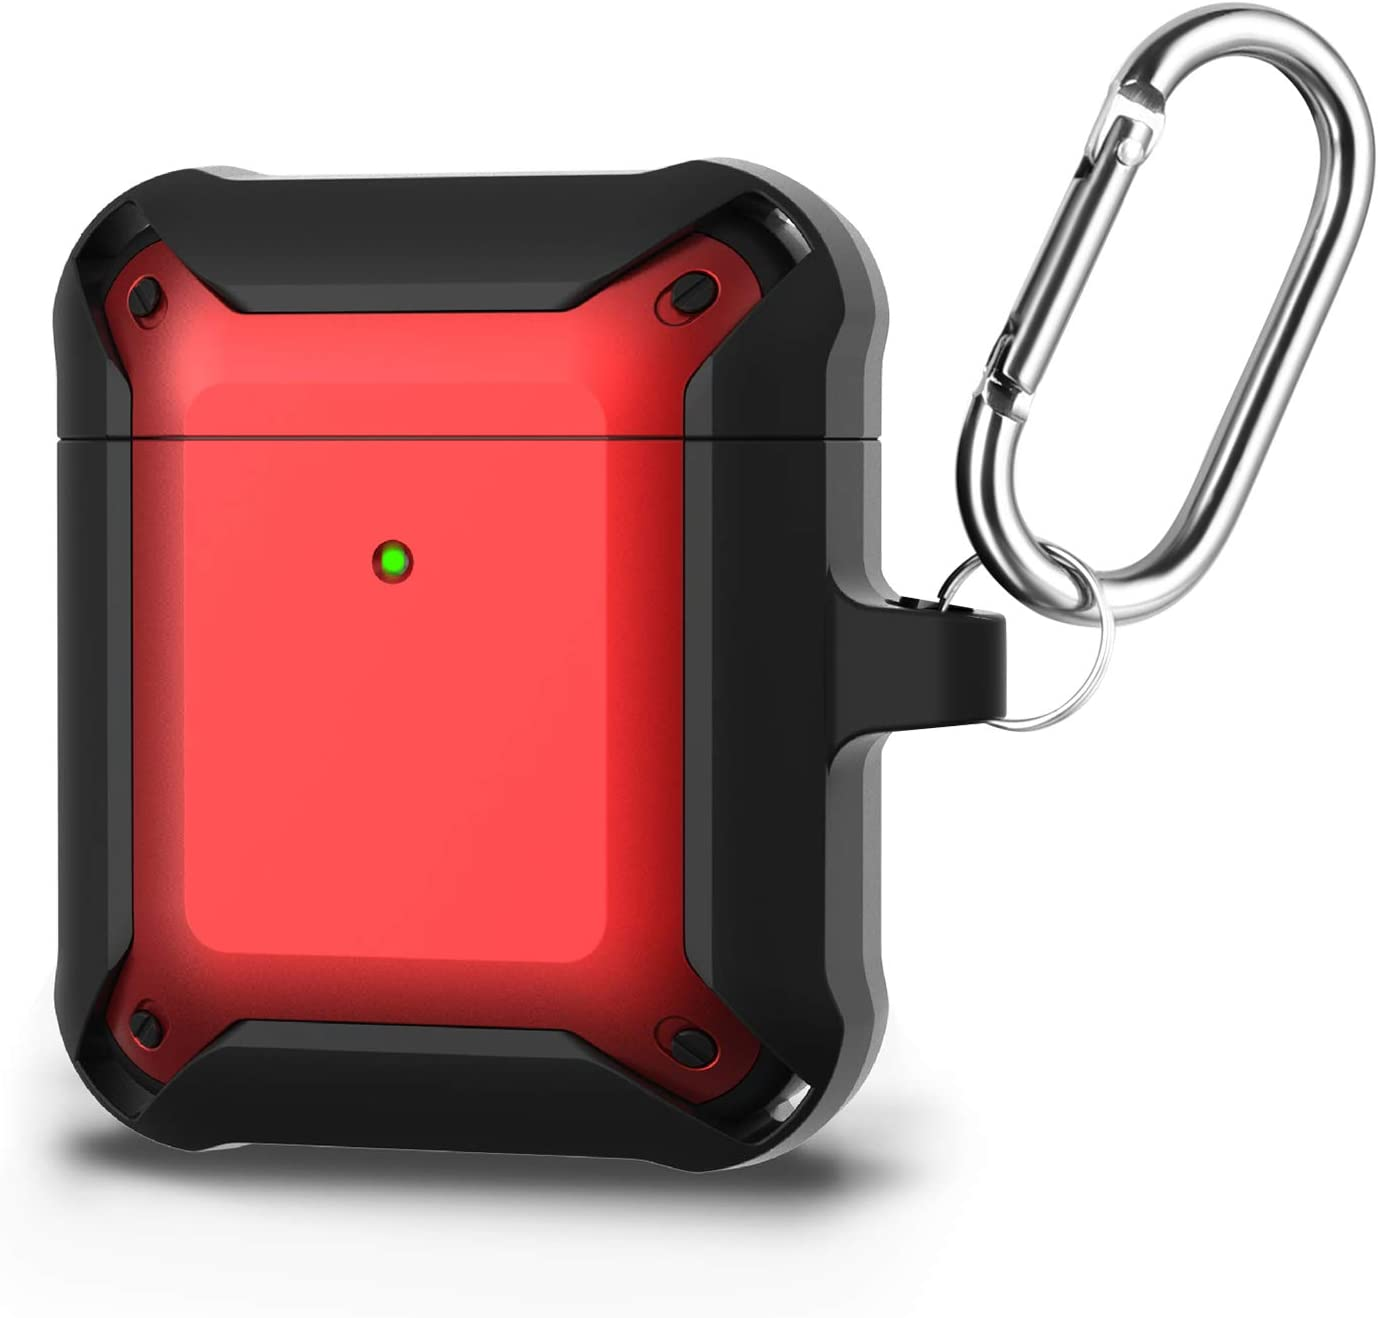 CASEHOME Airpods 1/2 Case Cover, Military Grade Rugged Armor TPU Cover with Keychain, Shock Absorption Full Protective Wireless Charging Case Compatible with Apple AirPods 1/2, Front LED Visible-Red